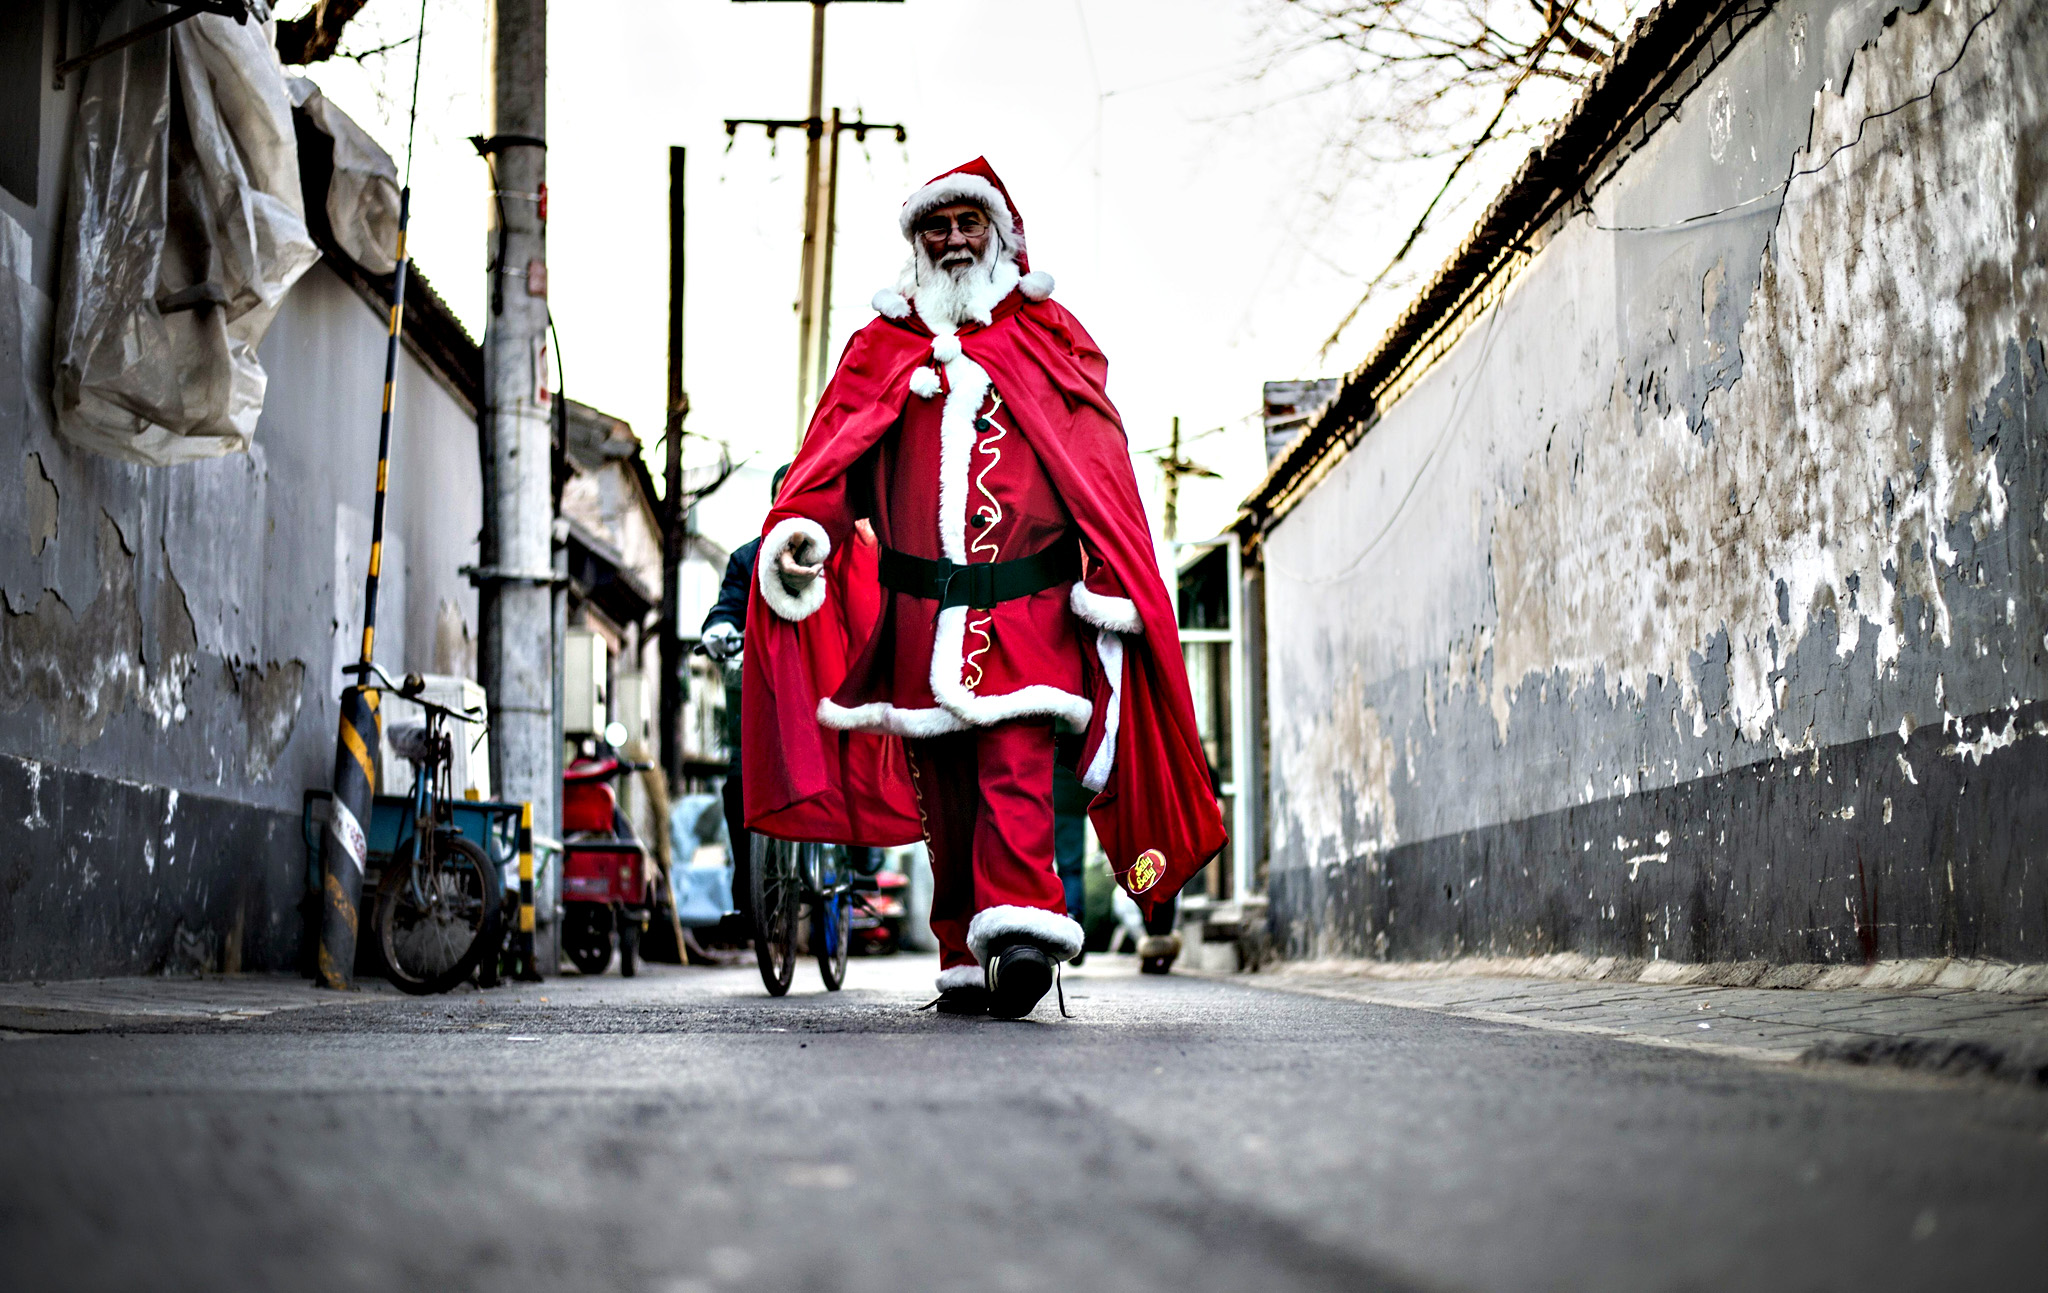 A Santa Claus walks in a hutong, in Beijing on December,23, 2014 as Christians around the world prepare to celebrate the holy day